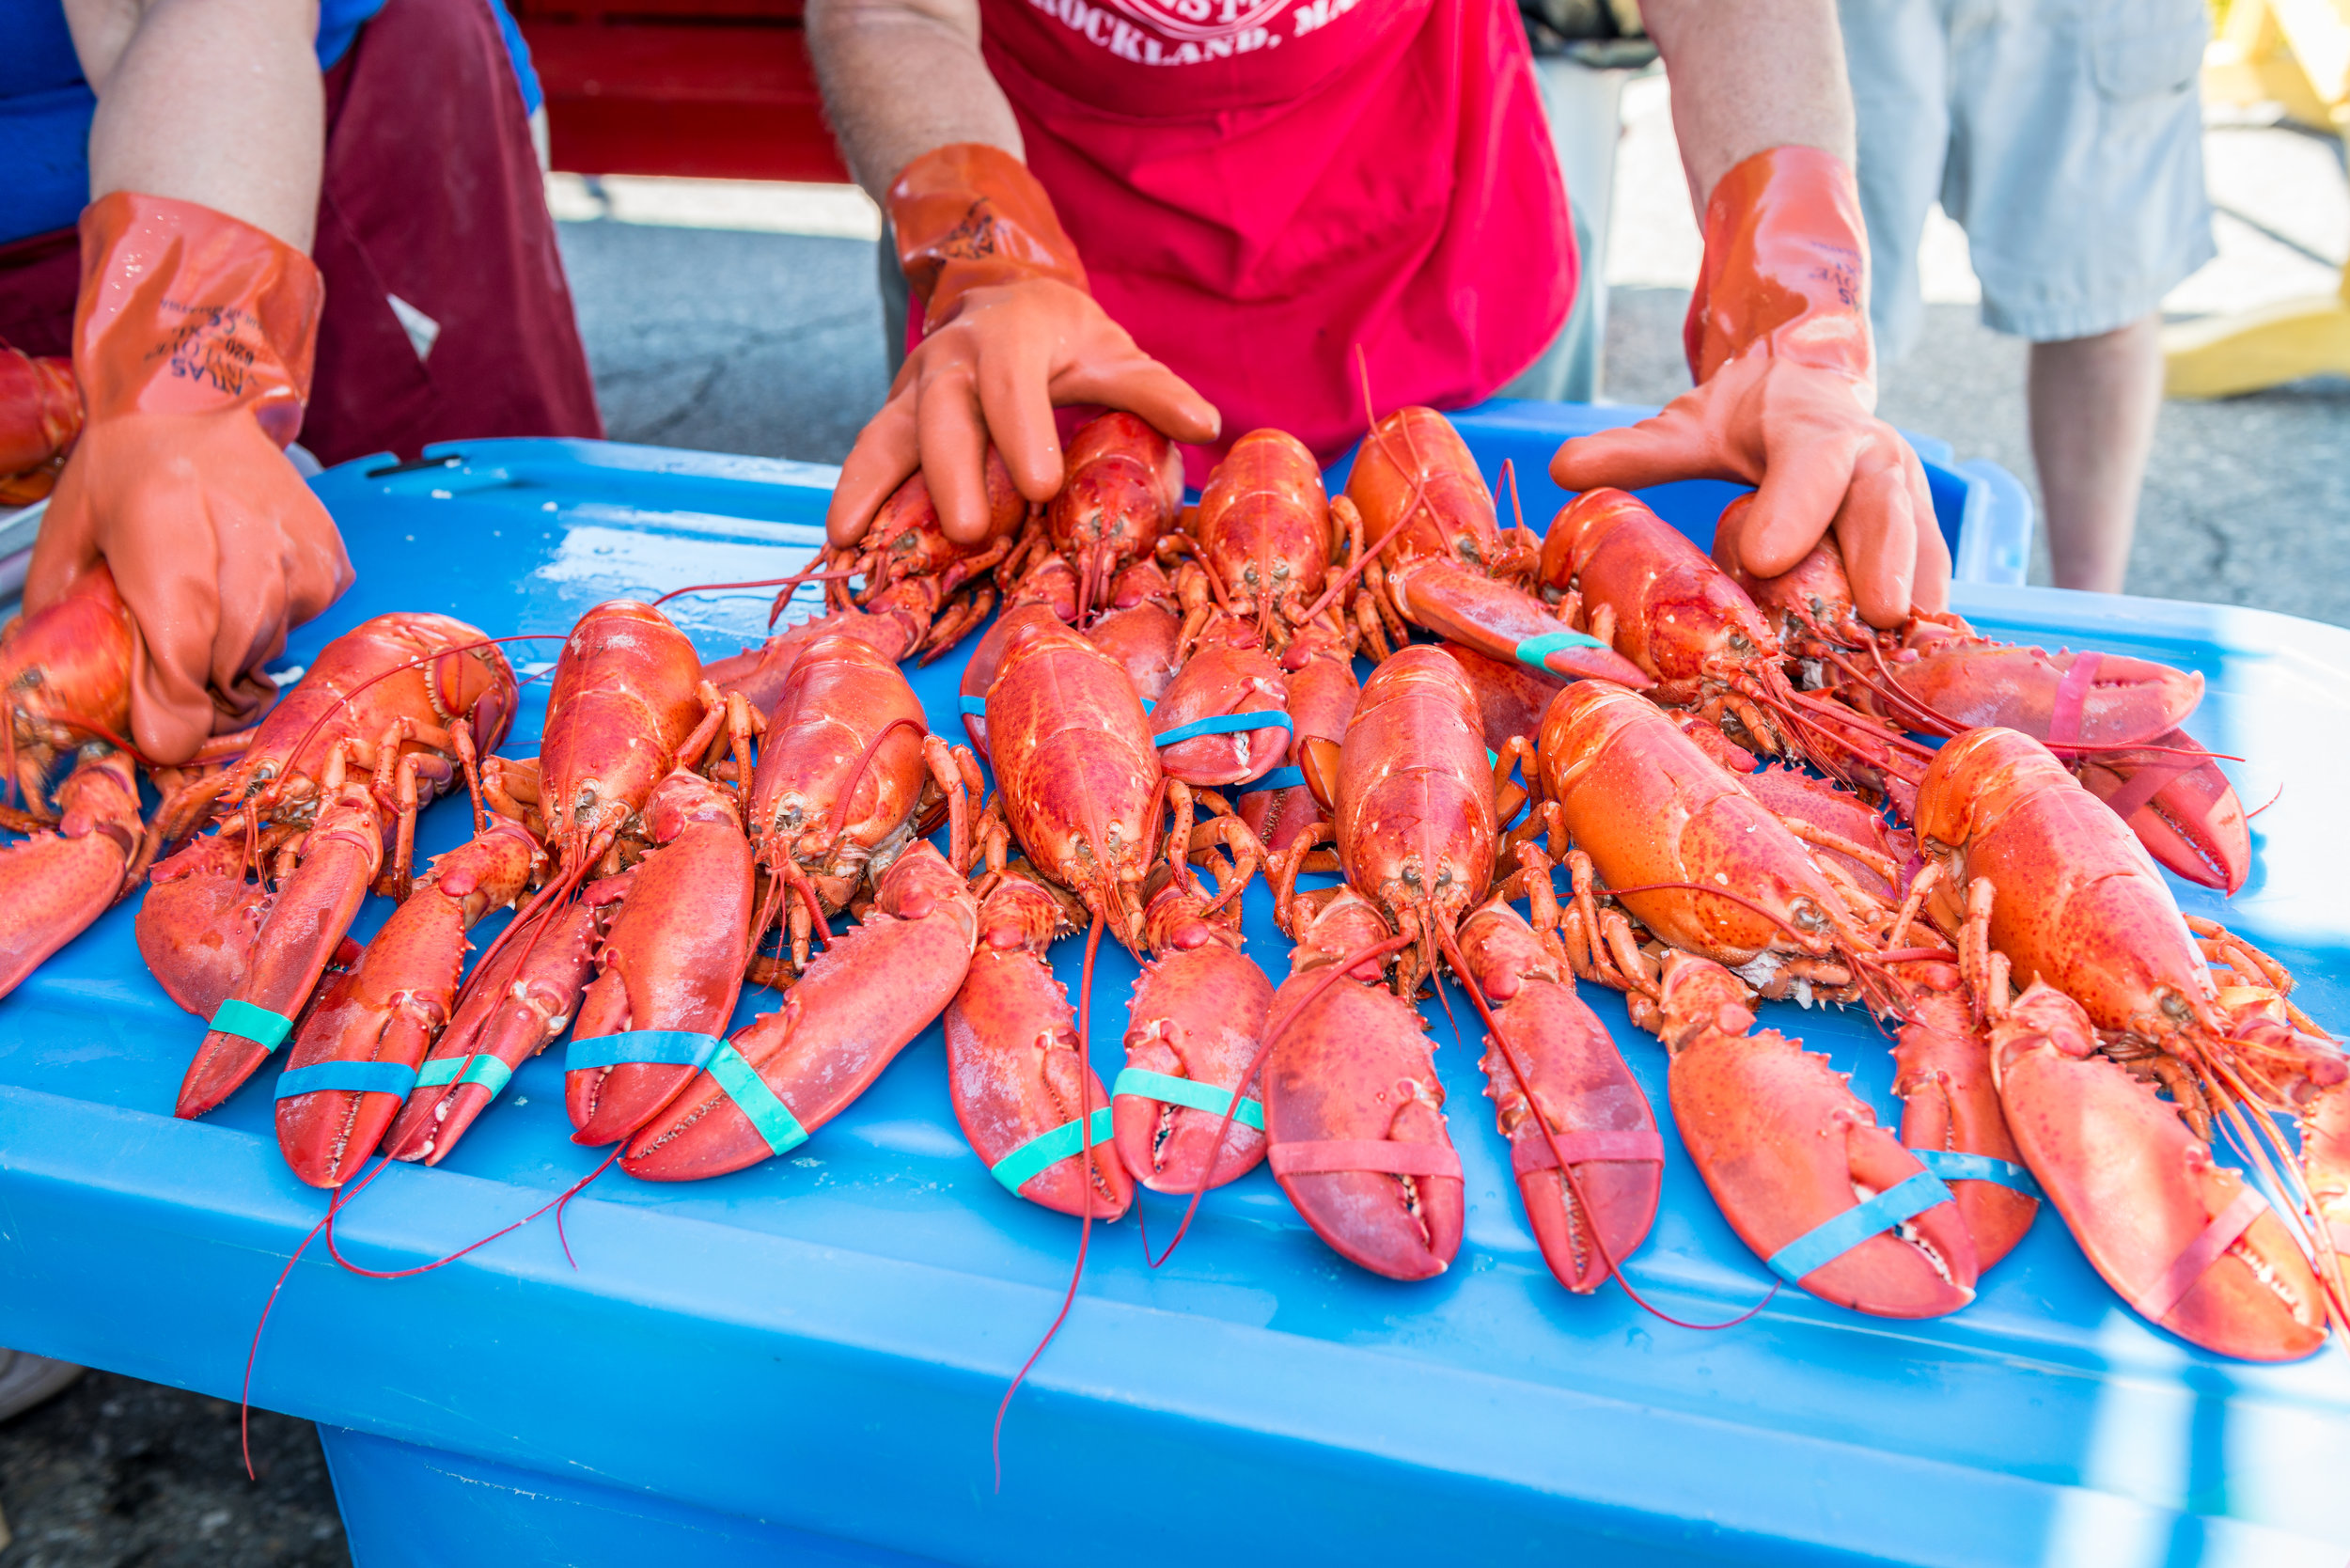 Maine Lobster Festival - July 31st - August 5th